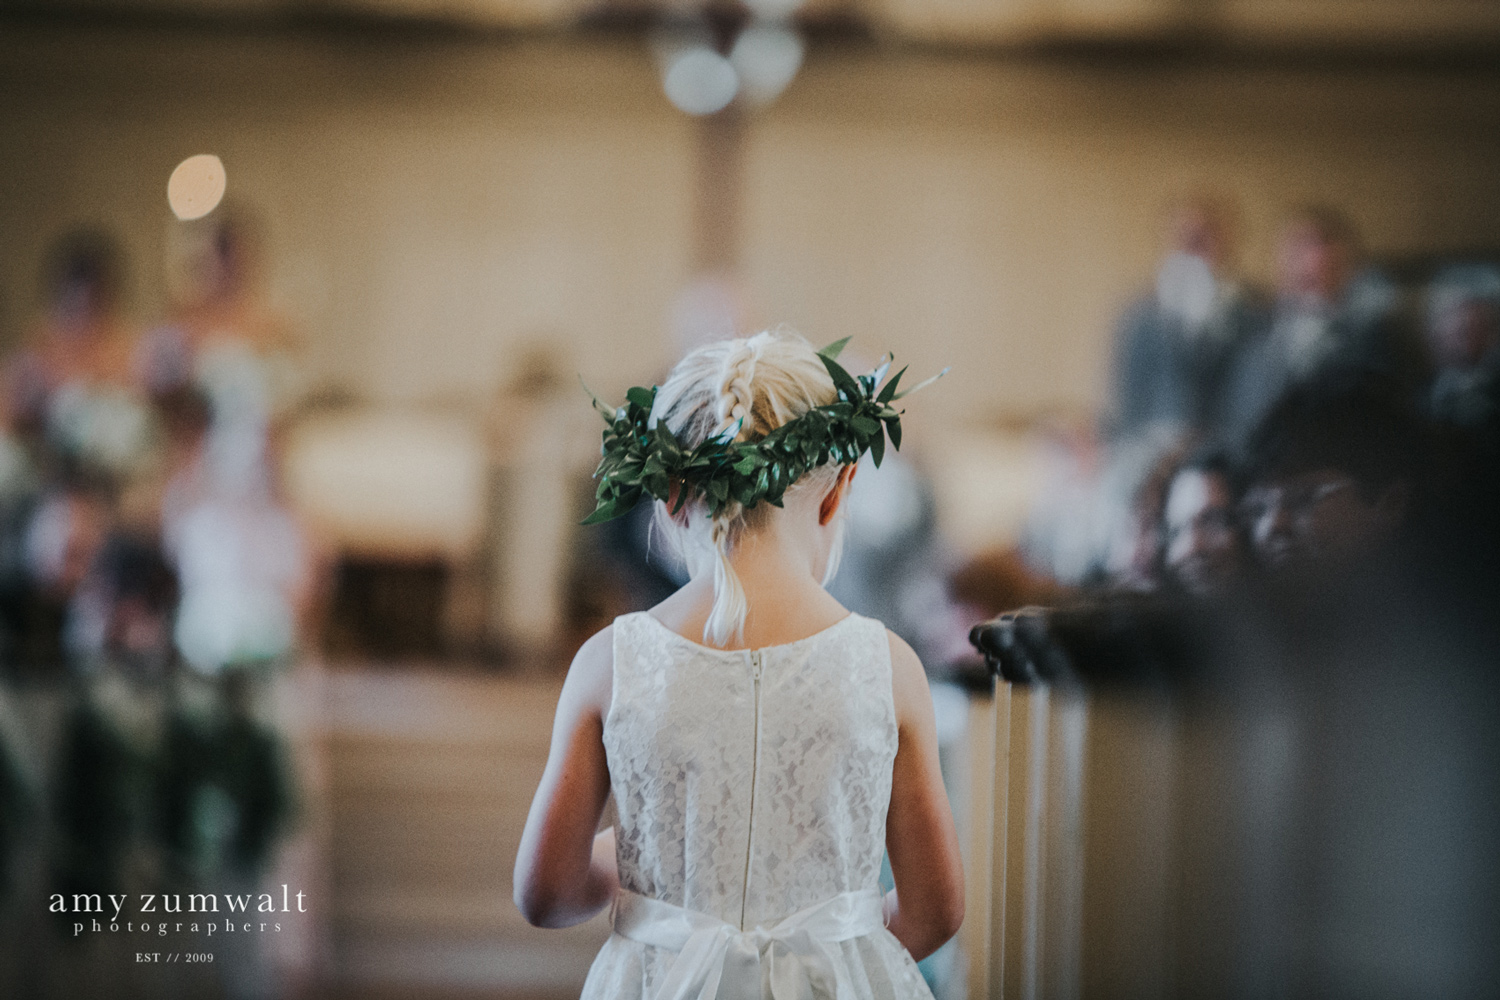 Flower girl with greenery floral crown walking down the aisle